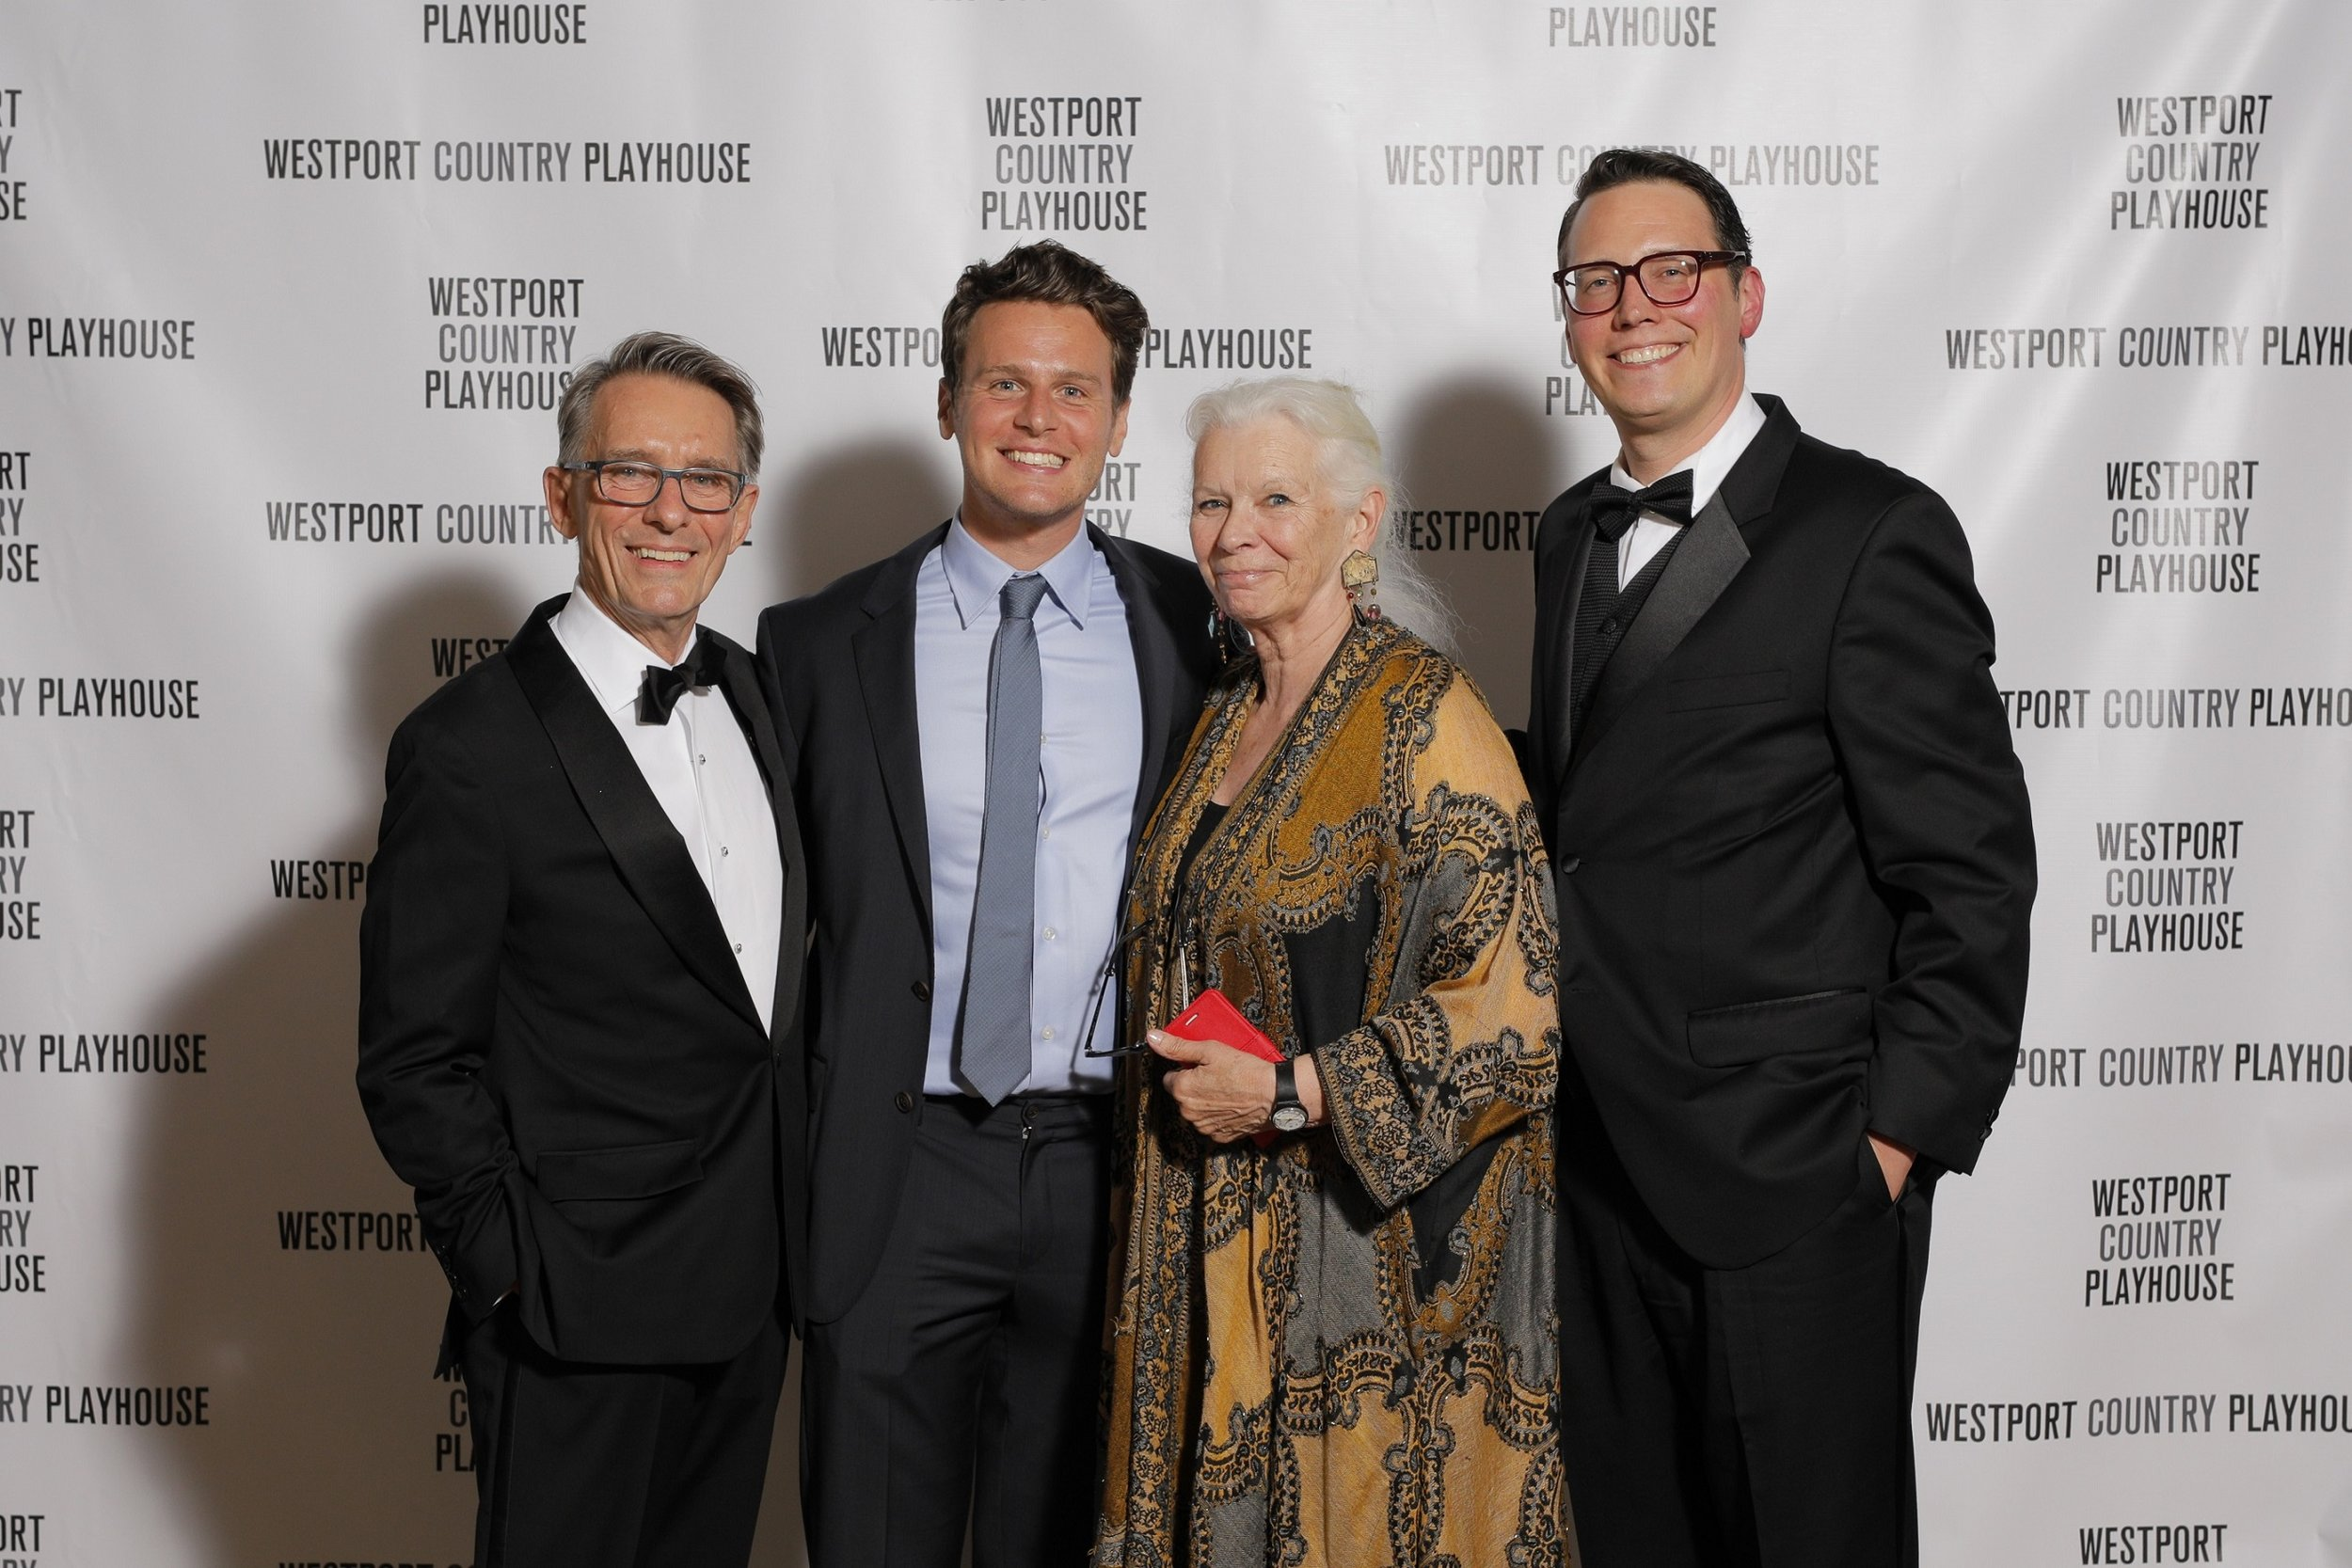 From left, Mark Lamos, Westport Country Playhouse artistic director; Jonathan Groff; Anne Keefe, Playhouse associate artist; and Michael Barker, Playhouse managing director.